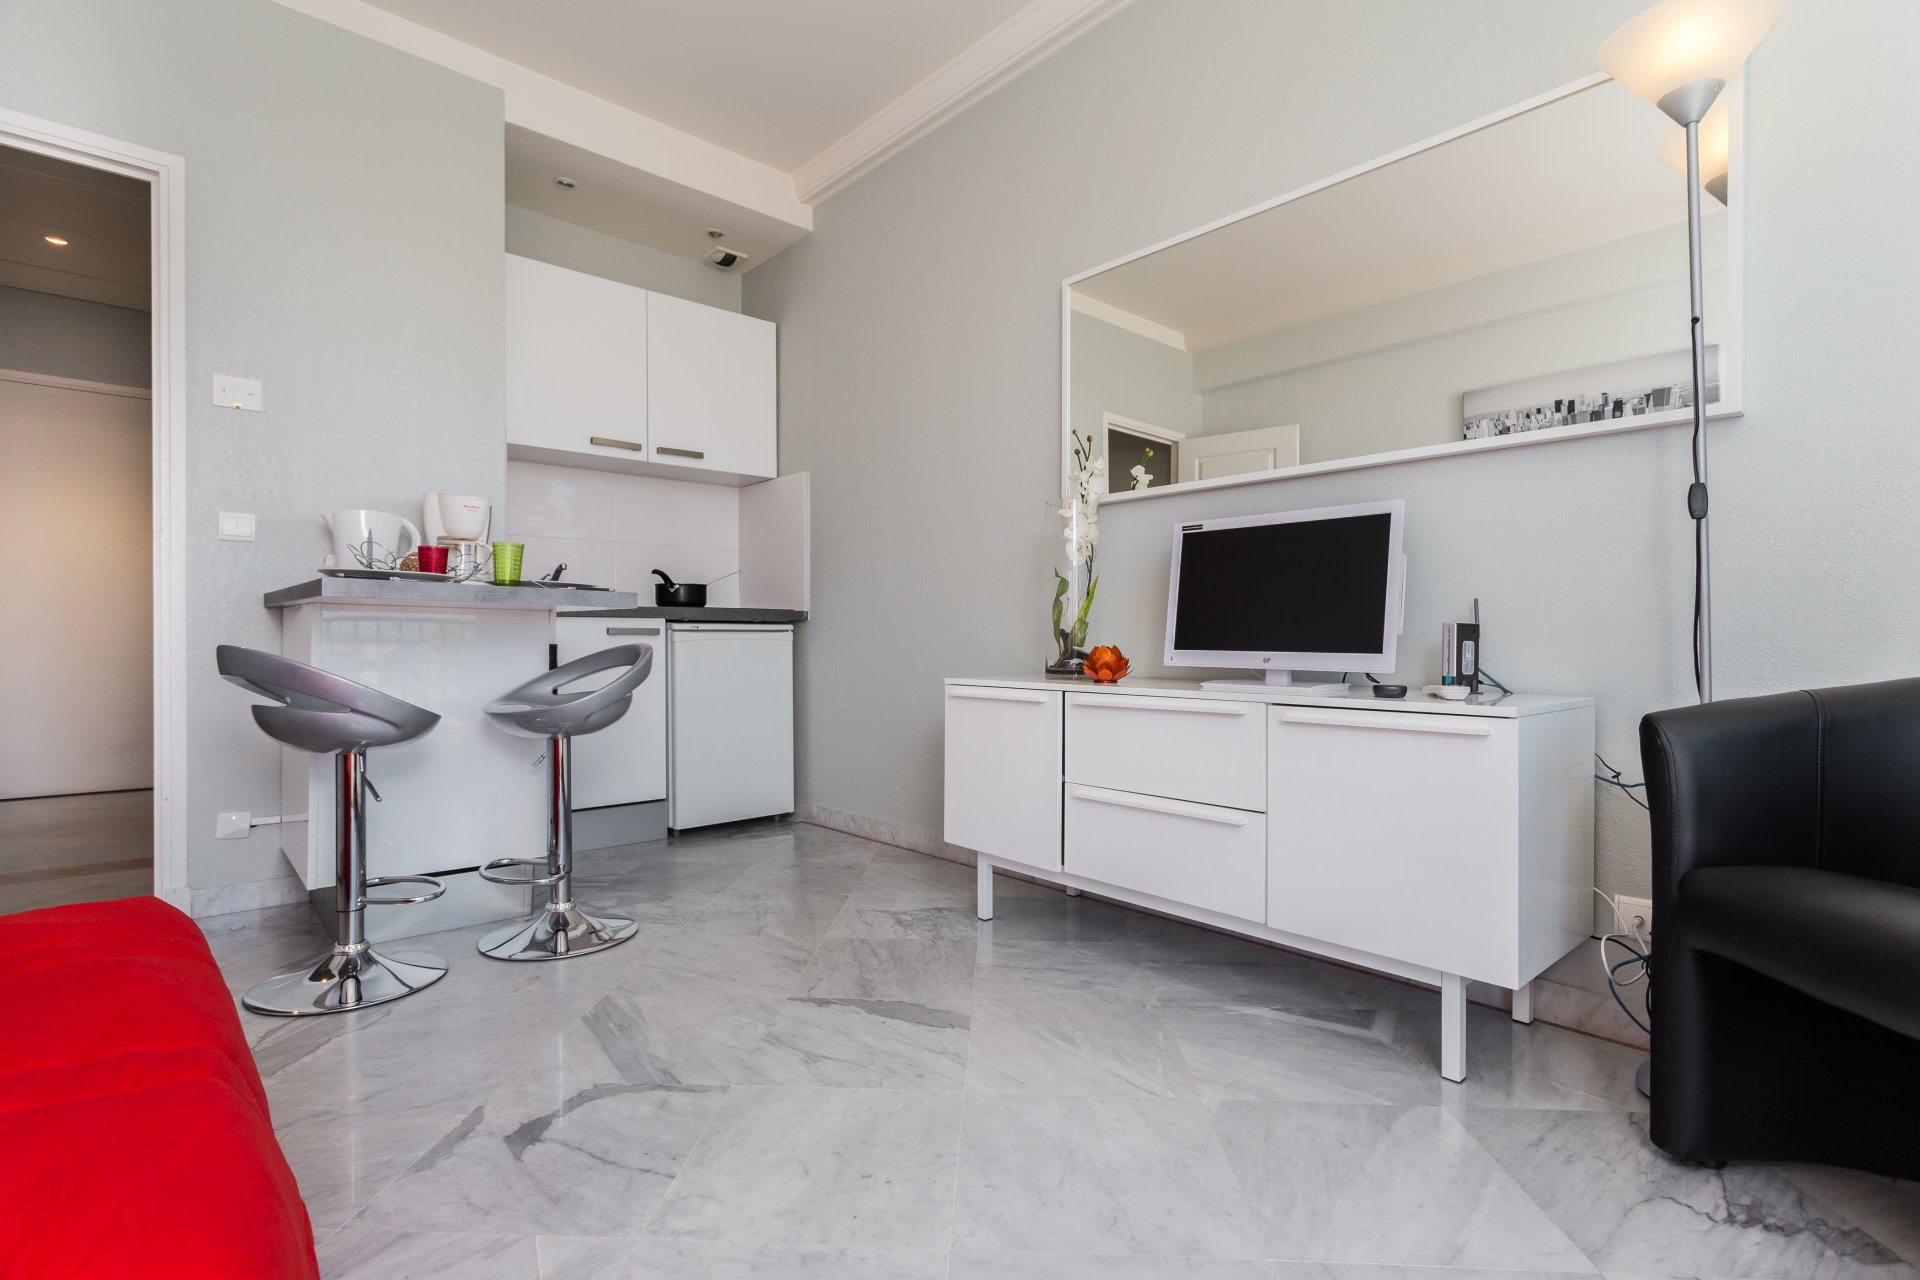 Cannes - Immeuble de 10 appartements